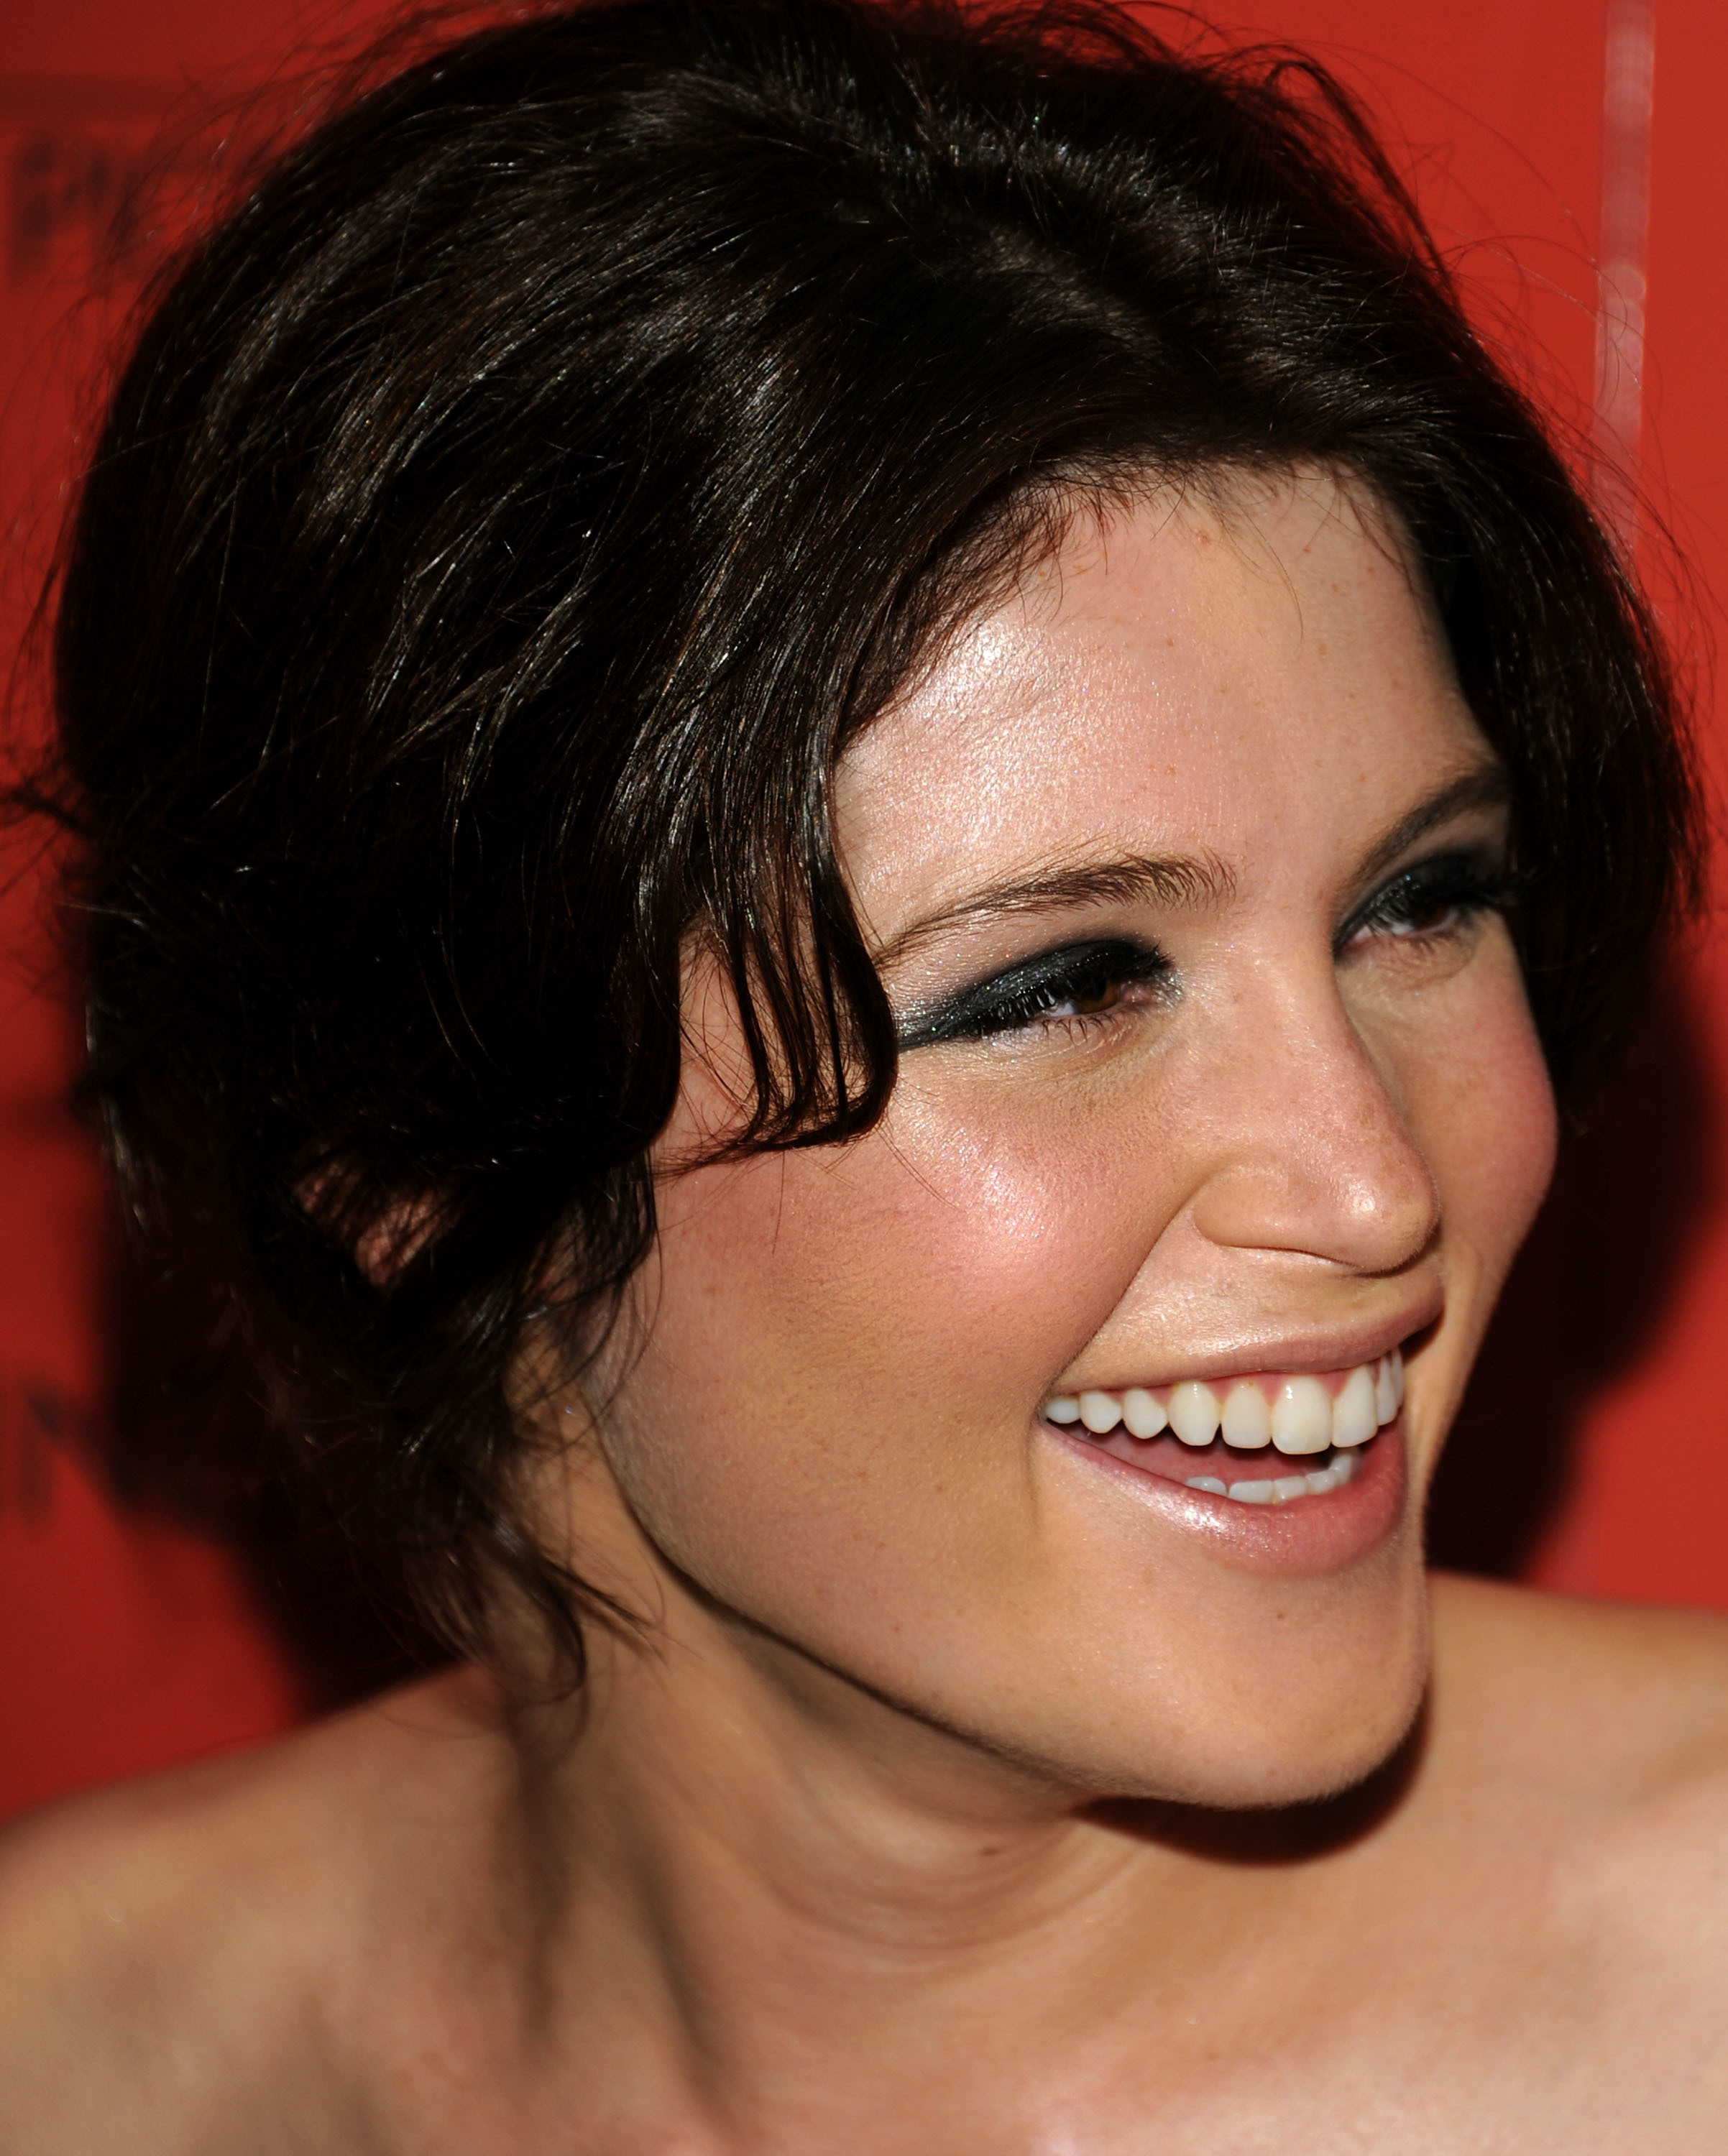 Women Gemma Arterton faces HD Wallpaper